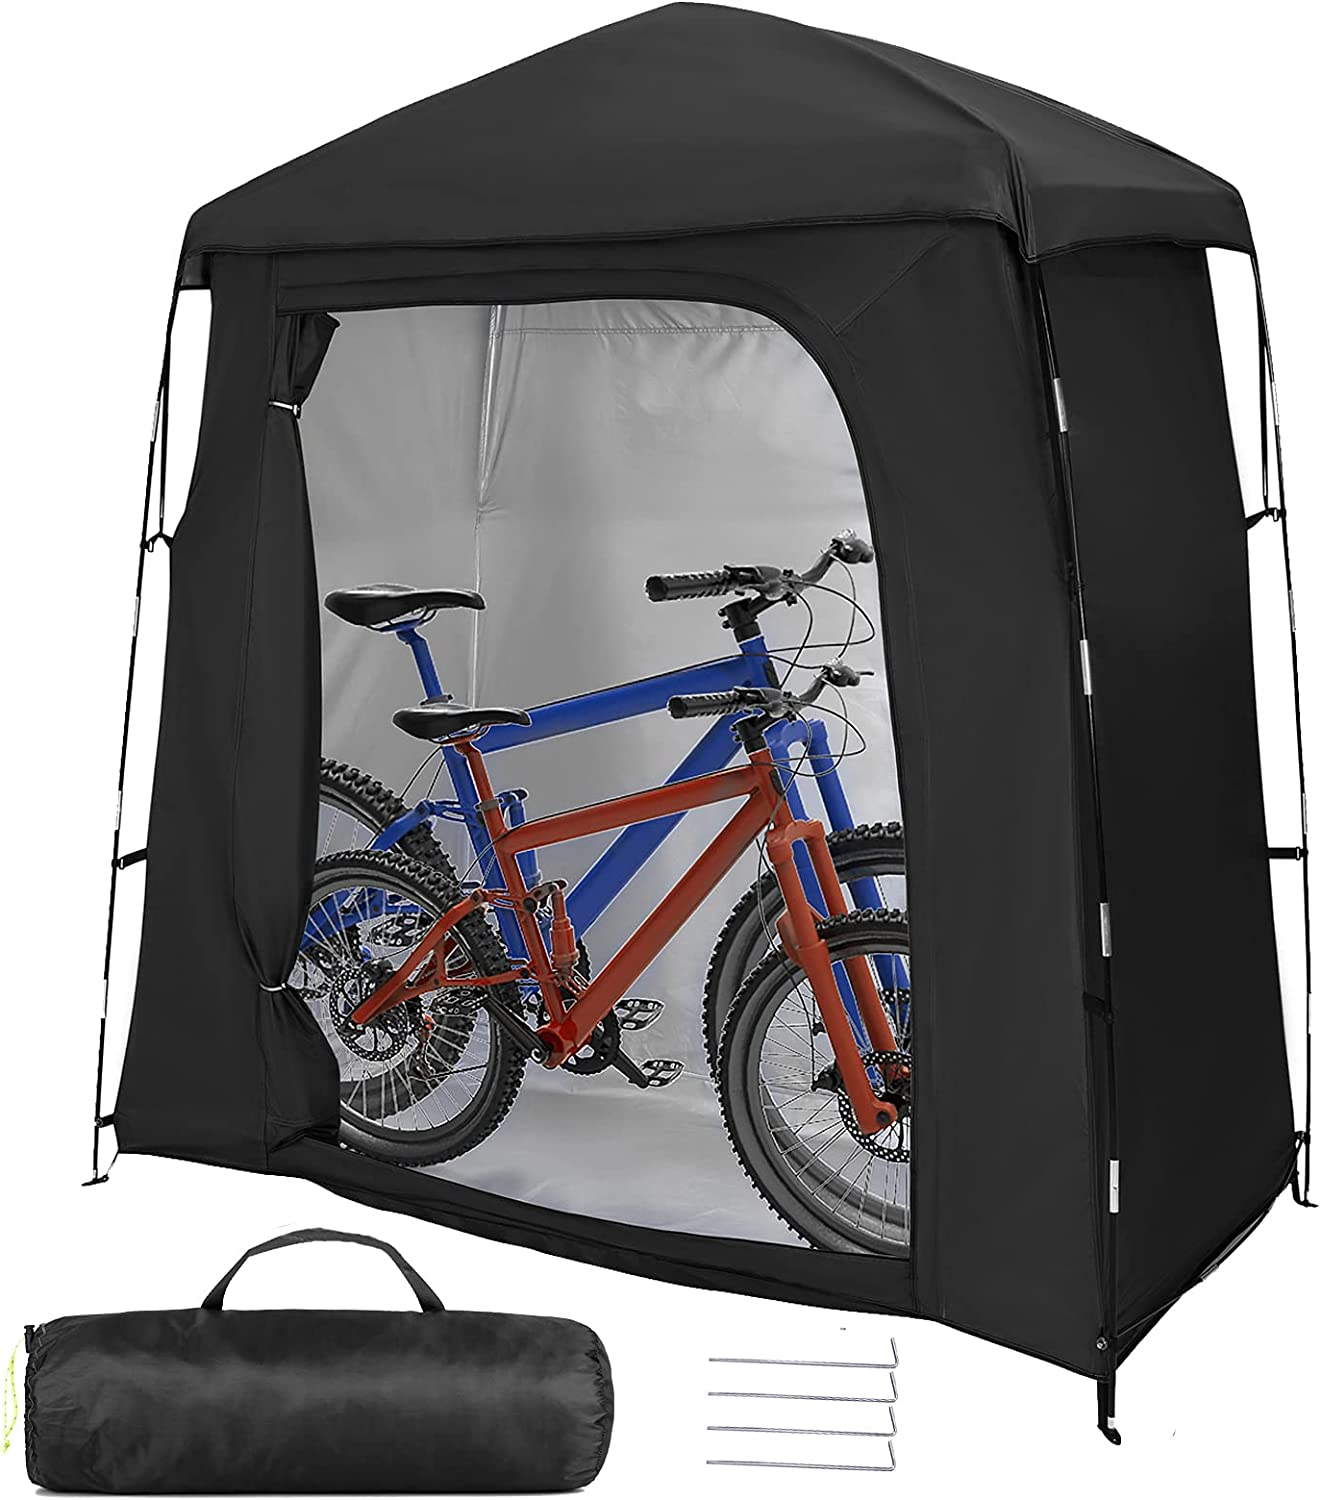 Large Portable Bike High material Storage Shed Tent 210D Silver Max 71% OFF Coated PU4000